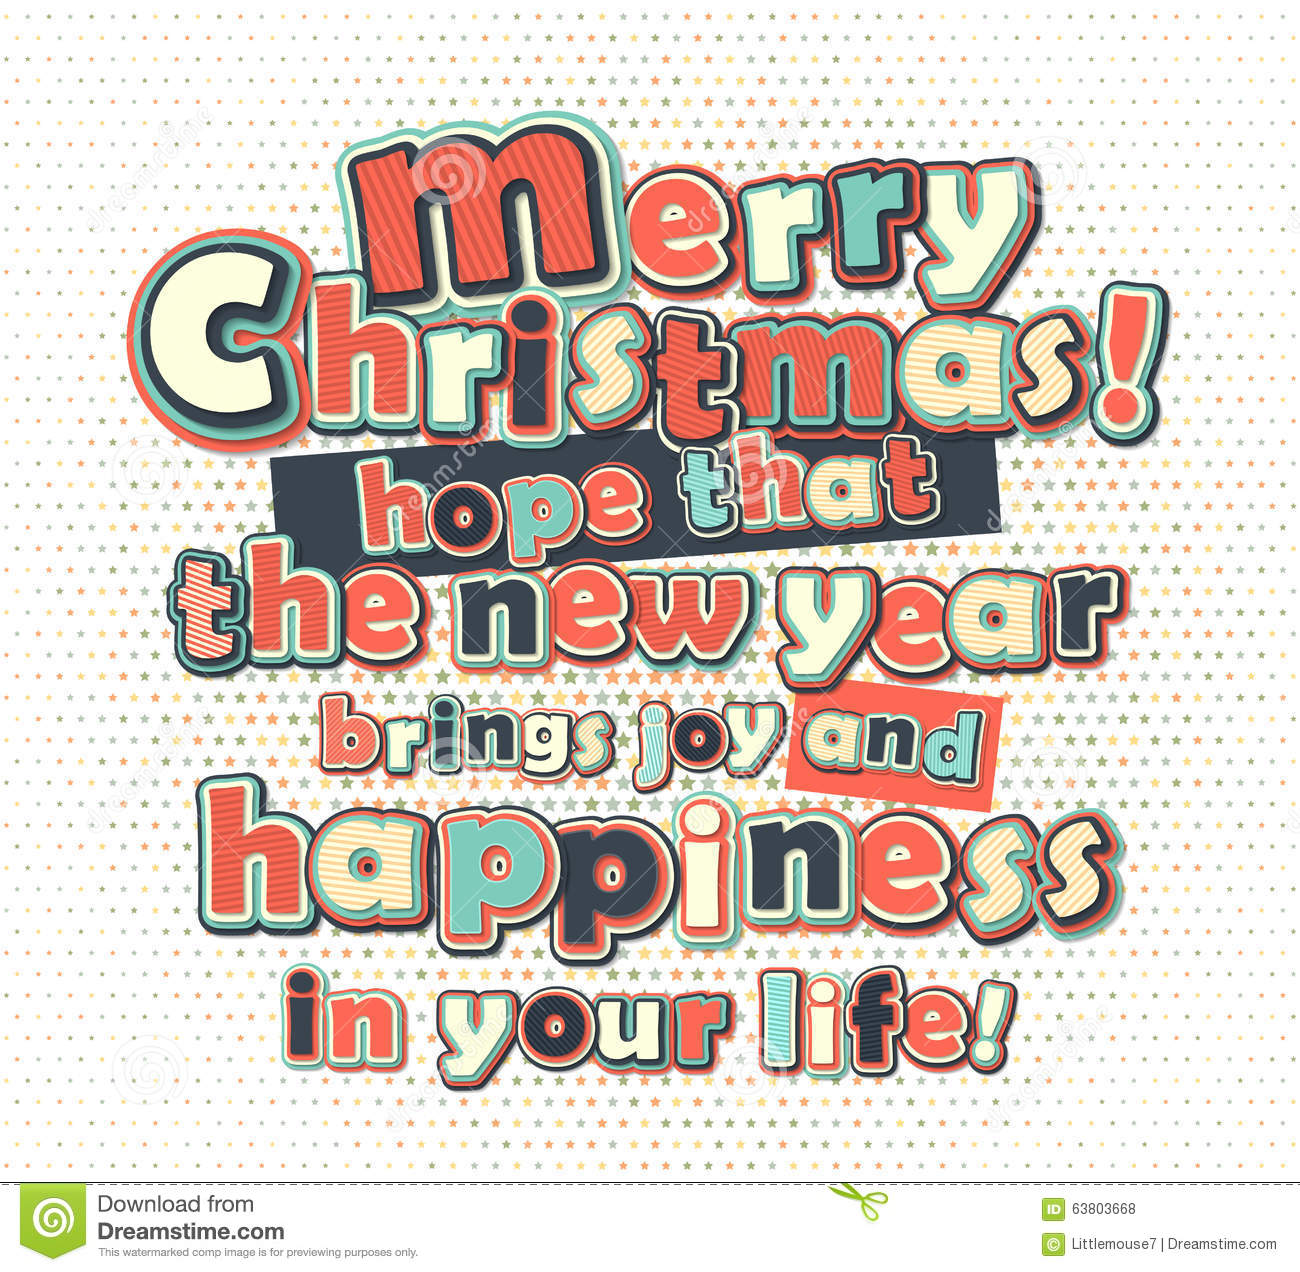 Poster with lettering greetings merry christmas happy new year poster with lettering greetings merry christmas happy new year alphabetical symbol kristyandbryce Choice Image